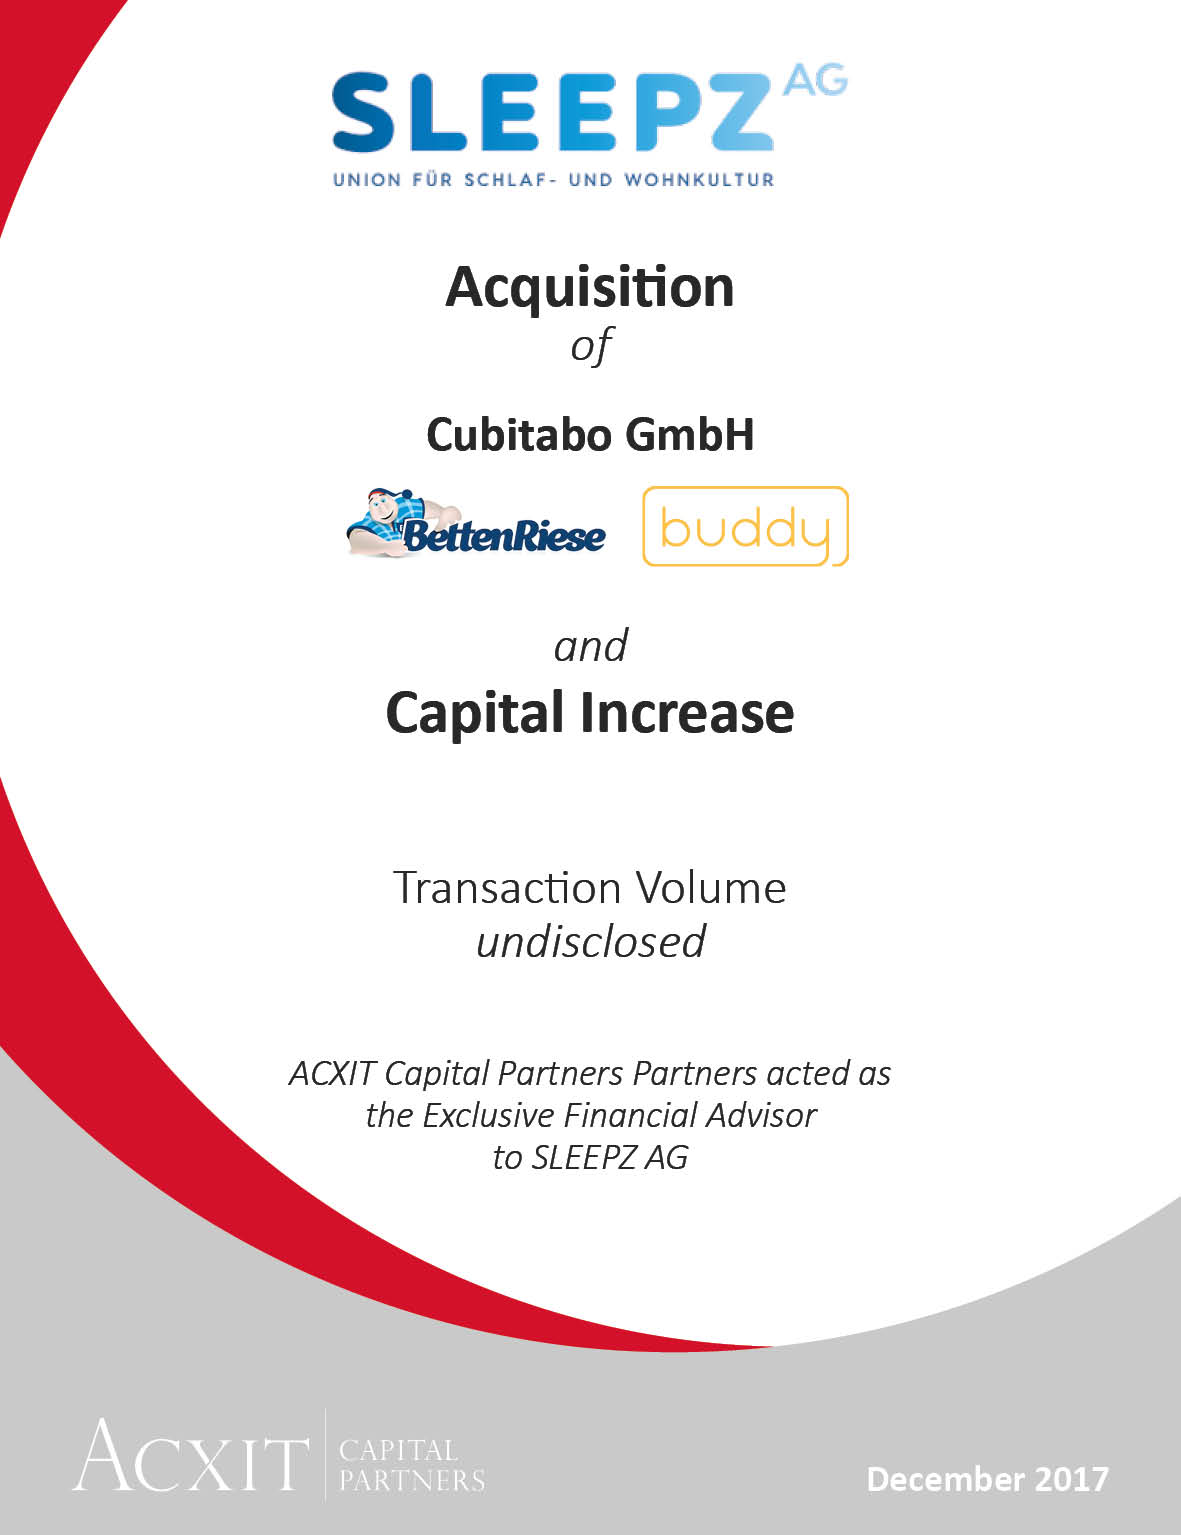 Acquisition of Cubitabo by SLEEPZ and Capital Increase